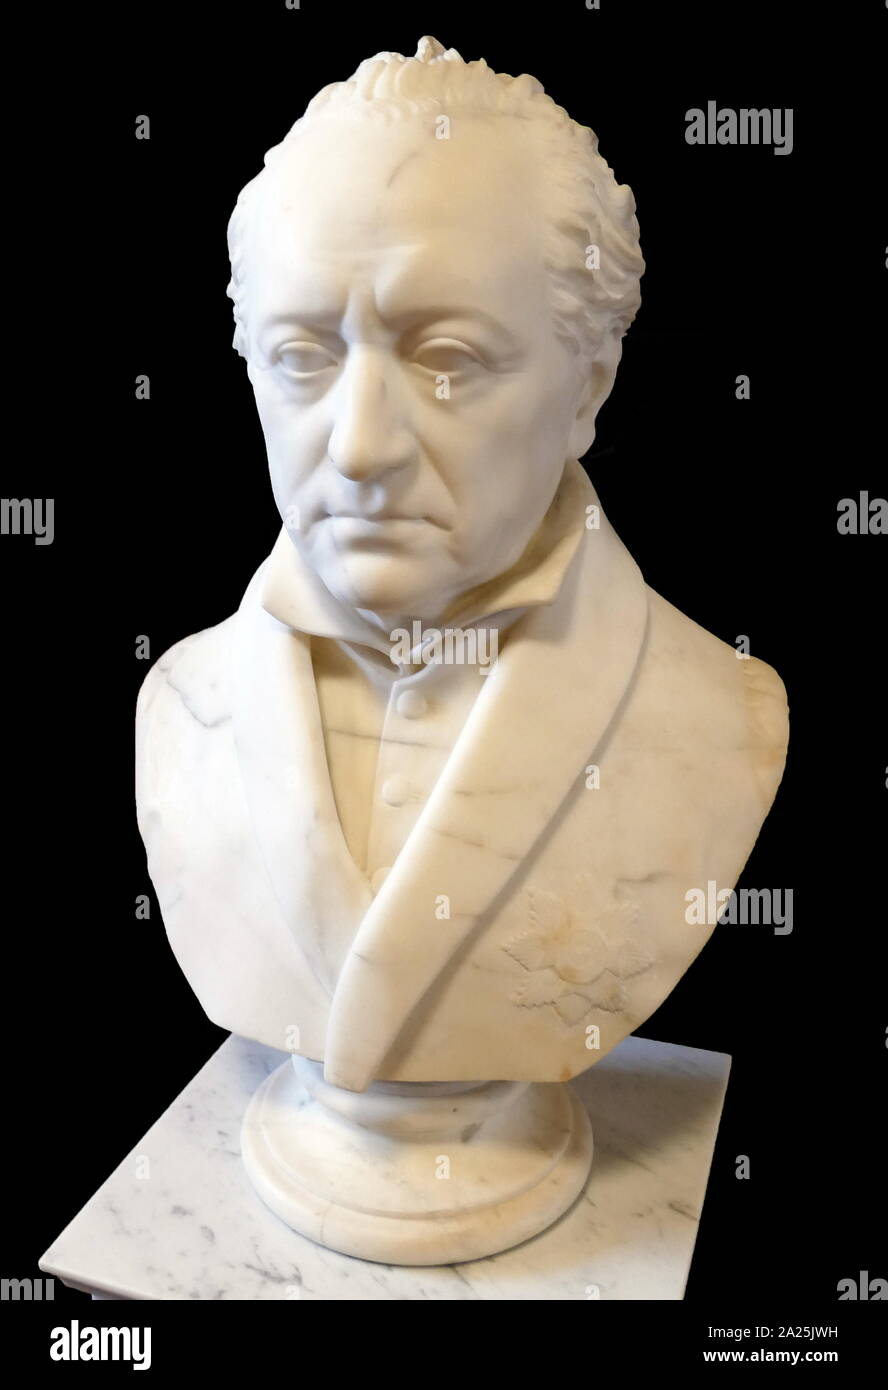 Bust of Johann von Goethe (1749 – 1832), German writer and statesman. Sculpted in 1823 by Johann Gottfried Schadow (1764 – 1850); German Prussian sculptor. Stock Photo